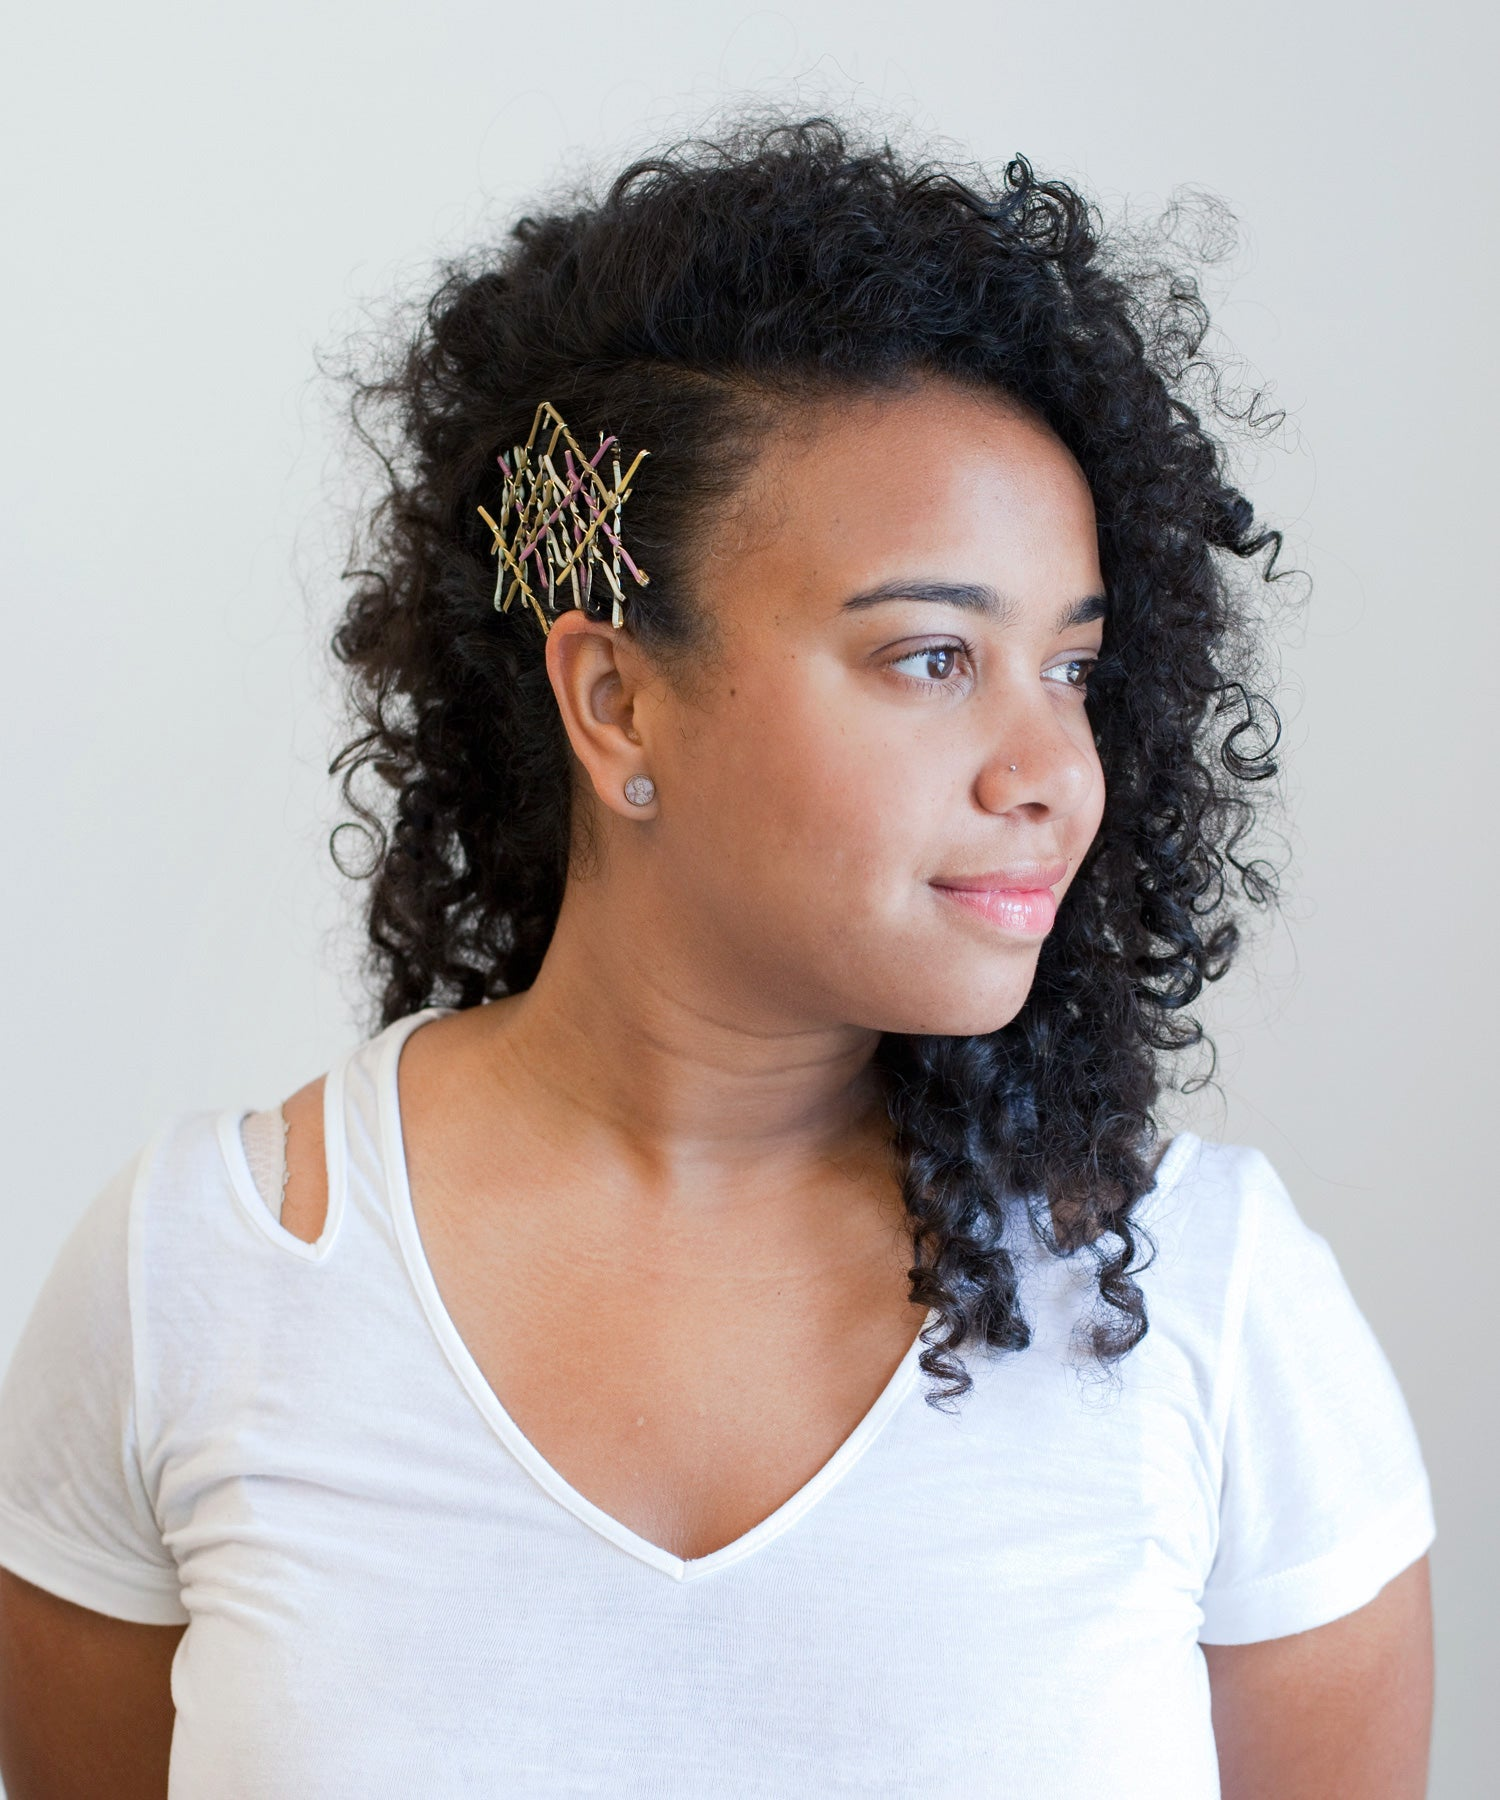 How To Hairstyles Learn How To Style Your Own Hair Using Bobby Pins